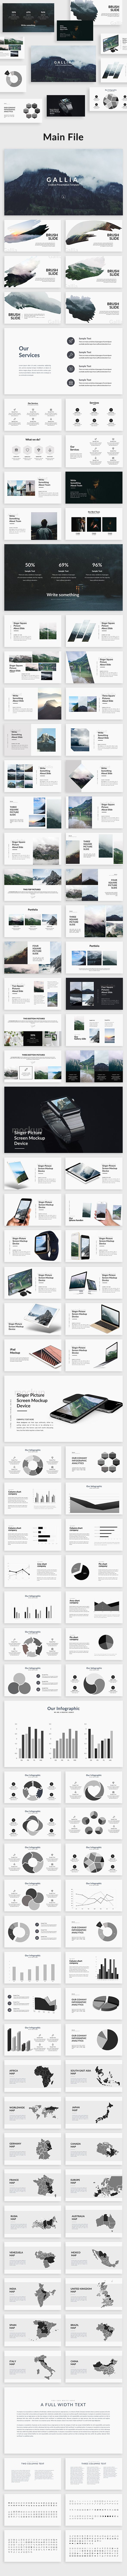 394 best ppt templates images on pinterest ppt template layout gallia creative powerpoint template toneelgroepblik Image collections